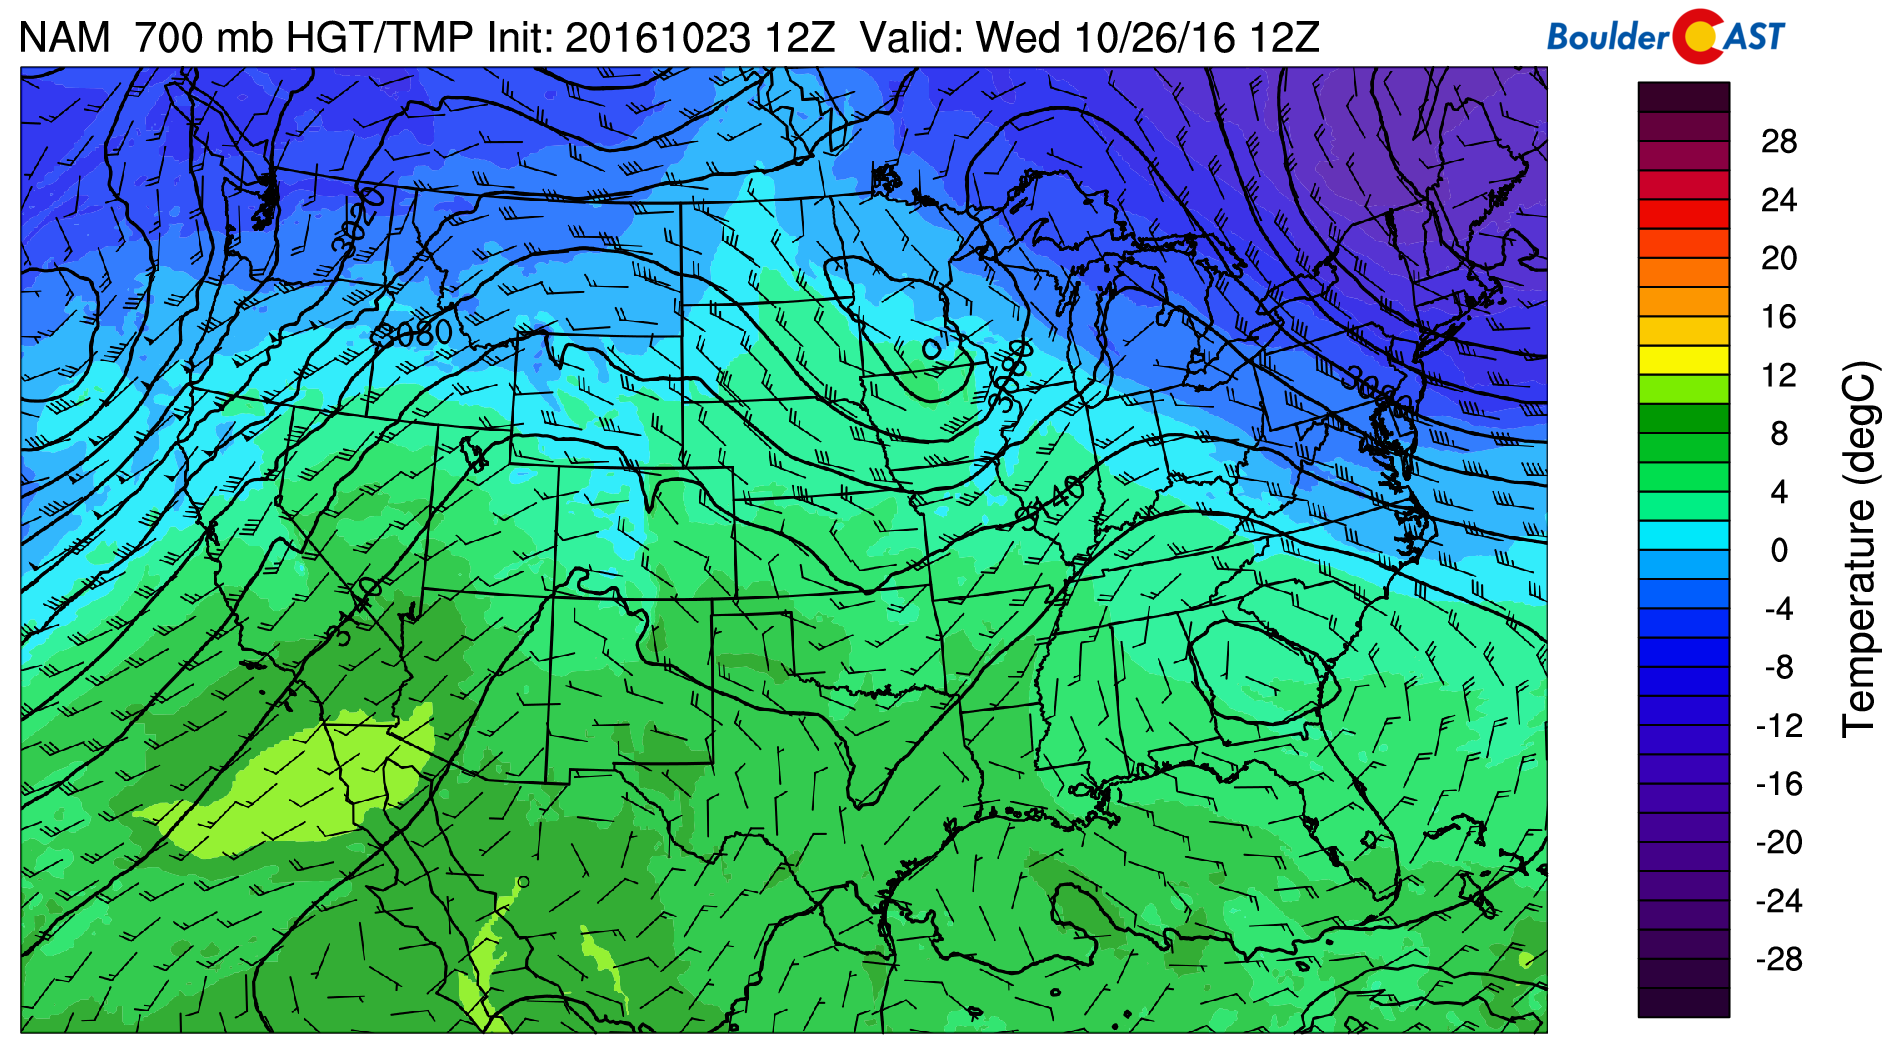 GFS 700 mb temperatures and wind for Wednesday morning, showing the cooler air and northerly flow